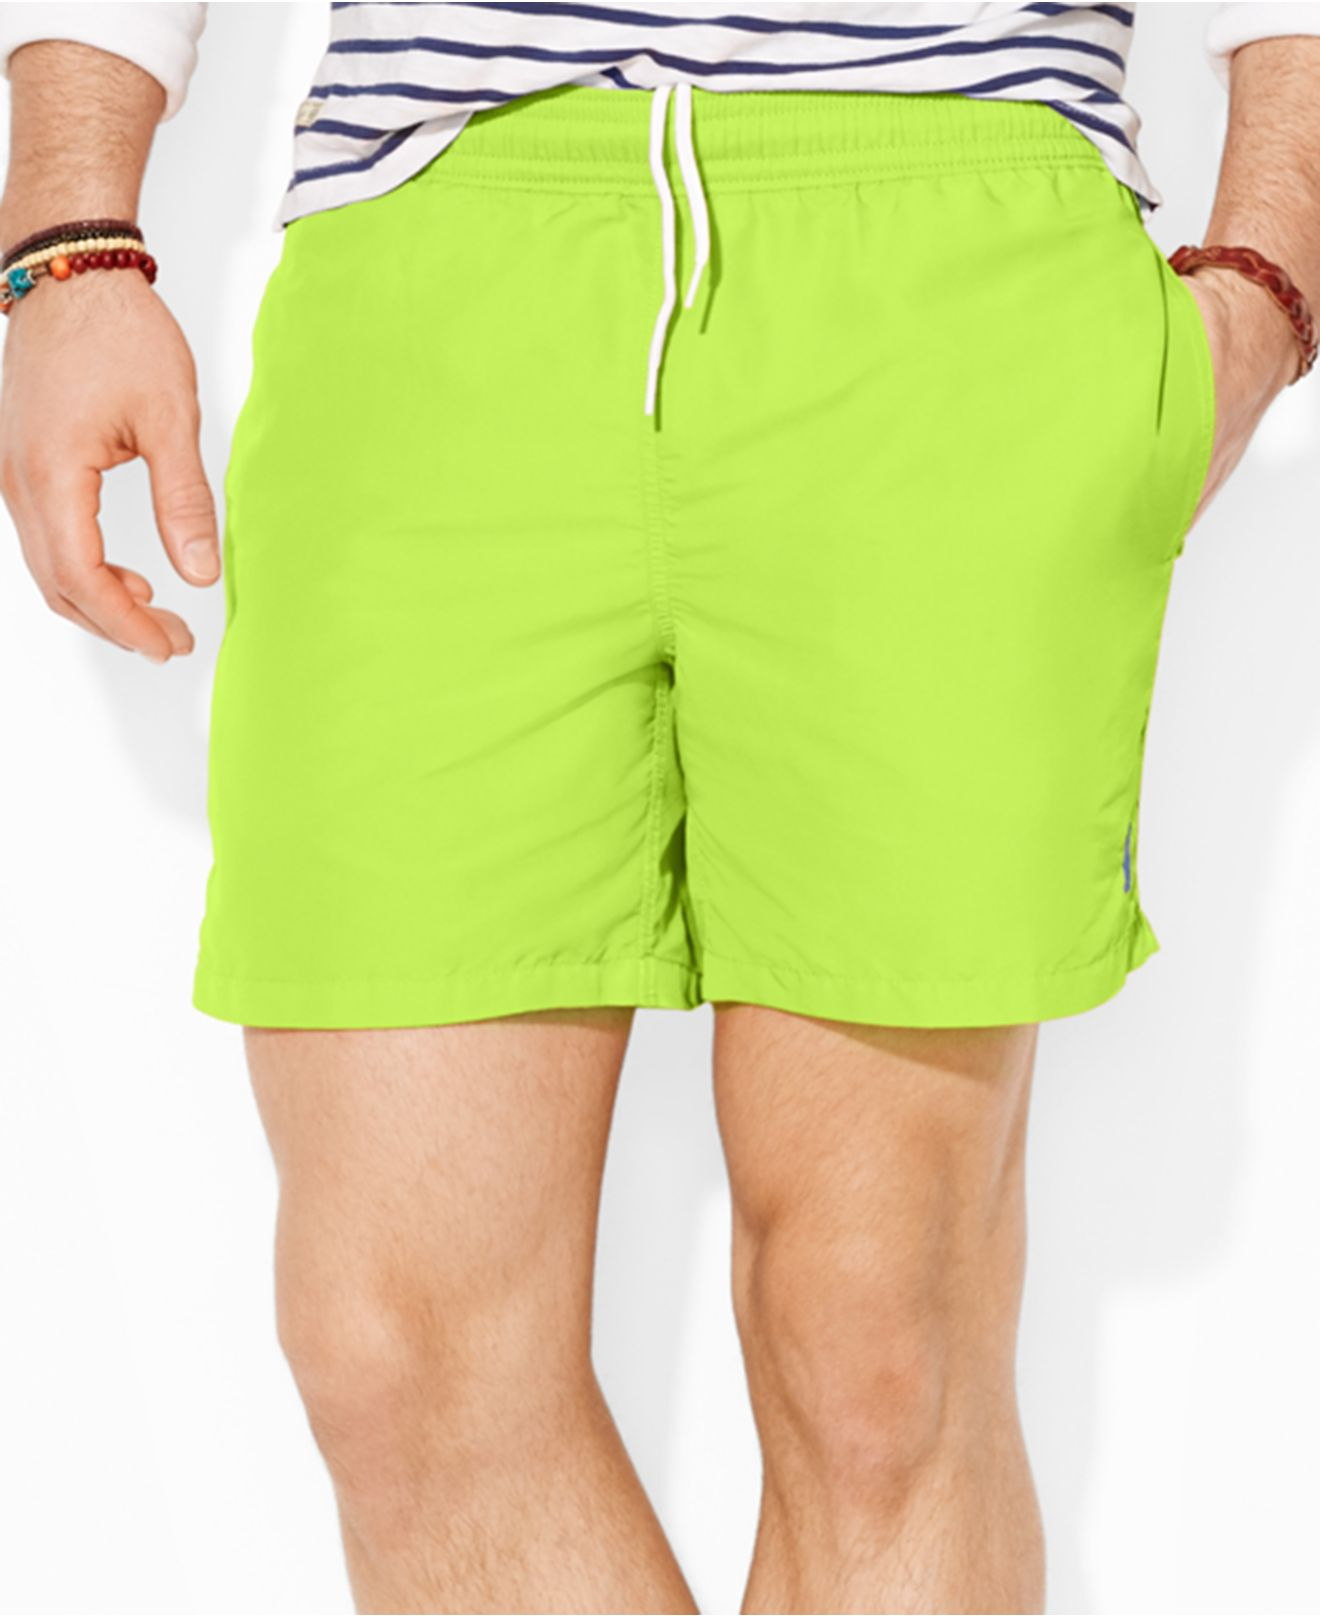 Product Features Tommy Hilfiger big and tall swim trunks for men featuring bold color.